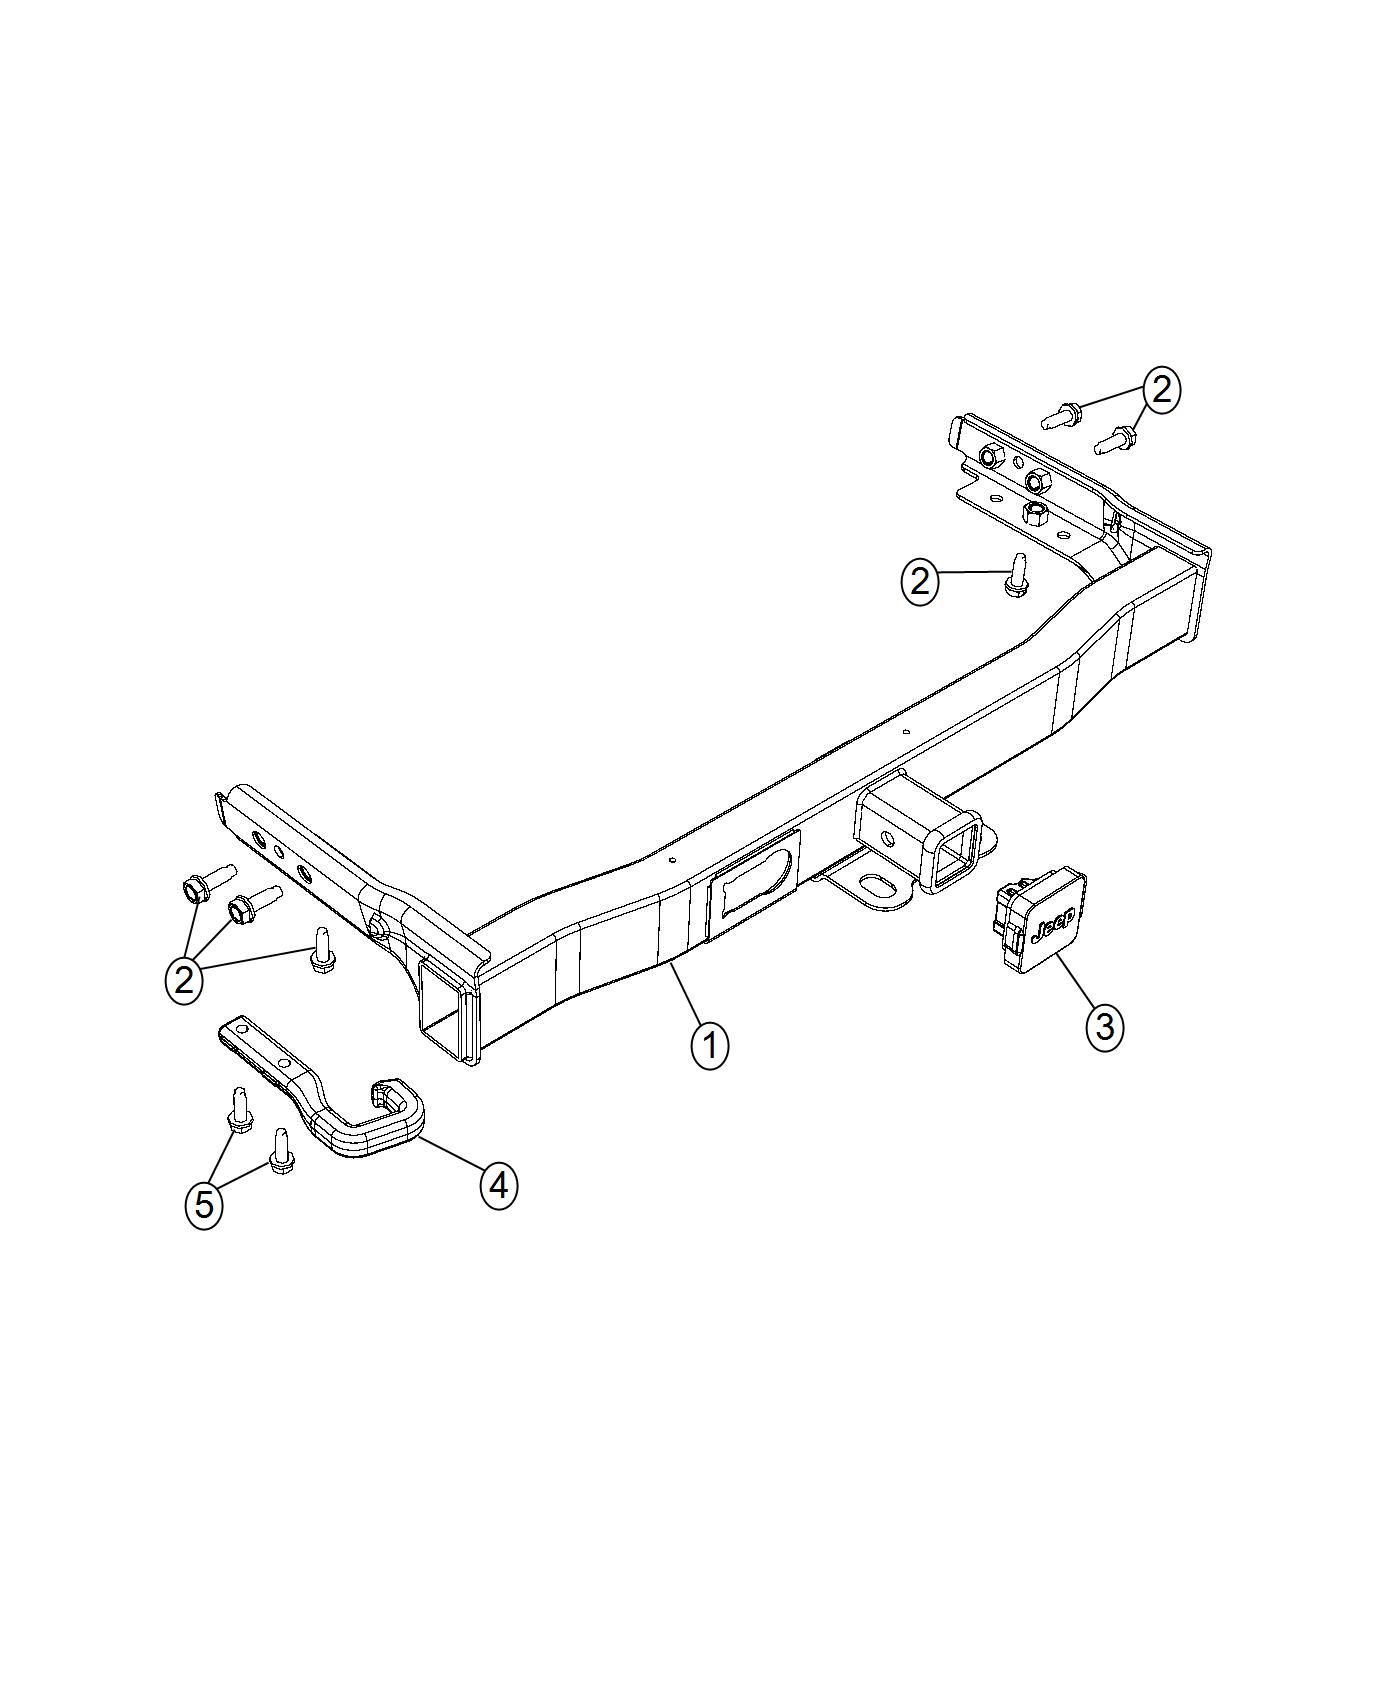 Jeep Cherokee Hitch, receiver kit. Trailer, trailer tow